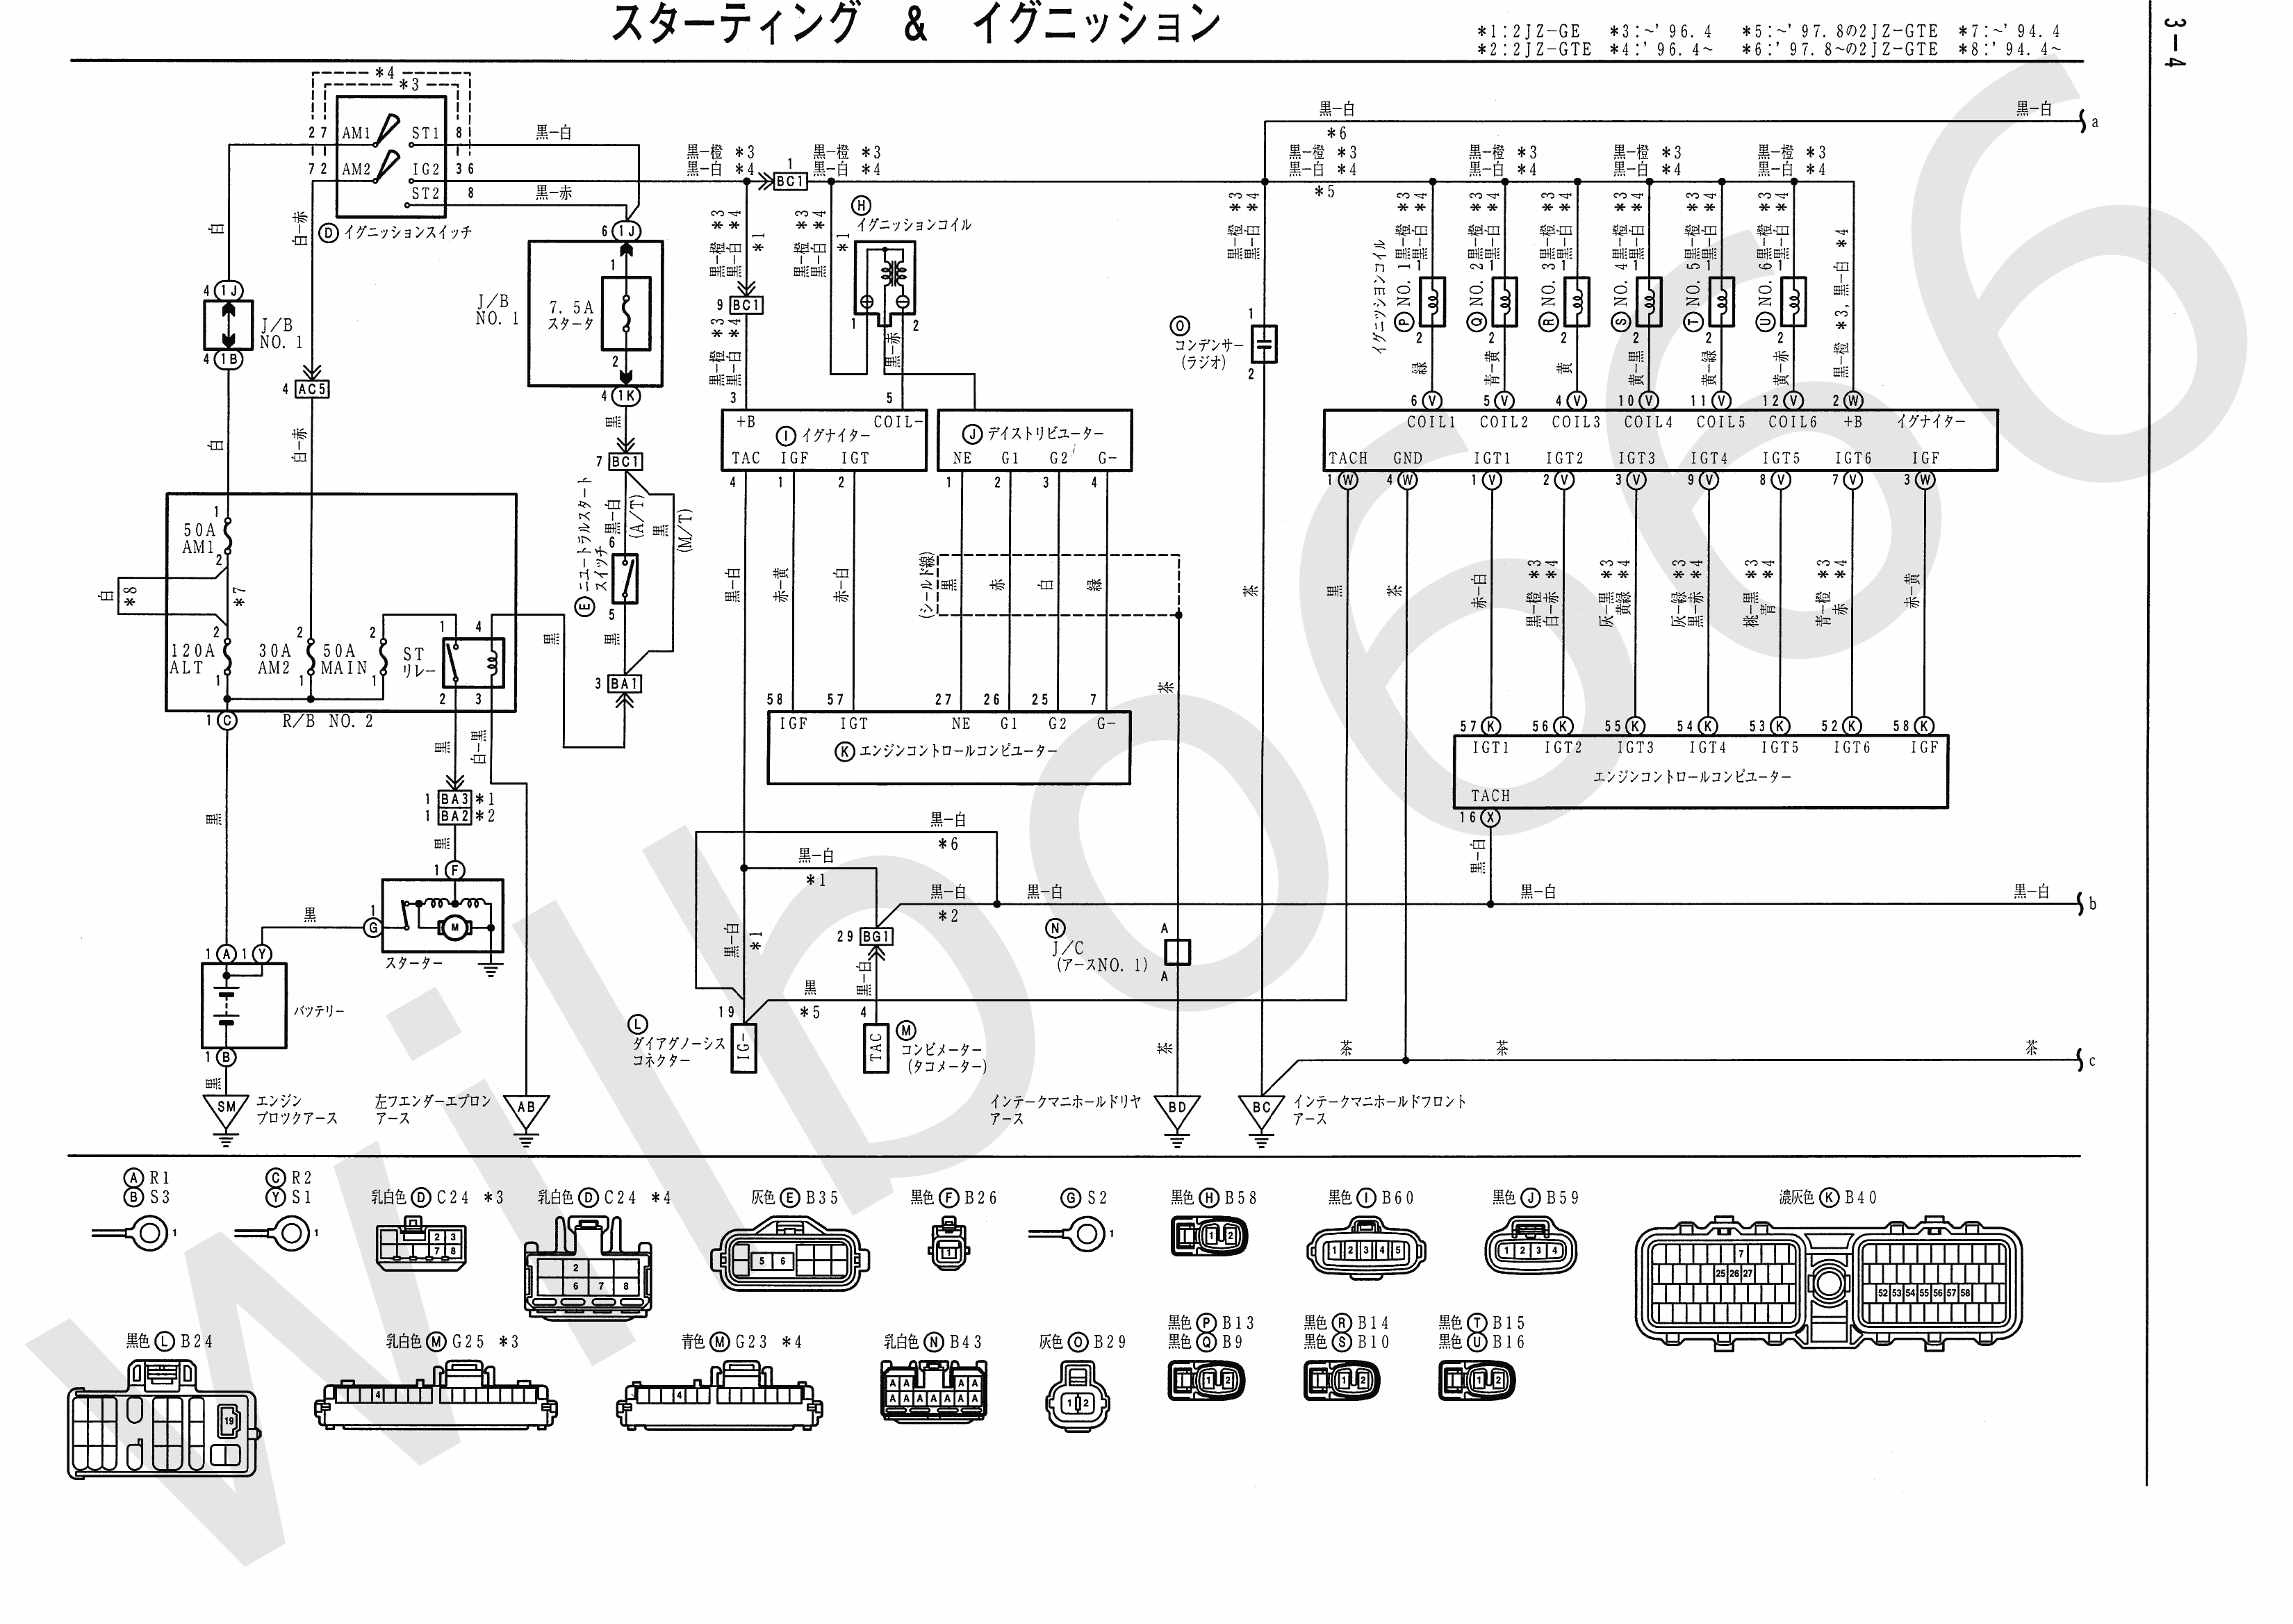 JZA80 Electrical Wiring Diagram 6742505 3 4 2jz ge wiring diagram 2jz ge ecu wiring diagram \u2022 wiring diagrams mk3 supra 1jz wiring harness at reclaimingppi.co